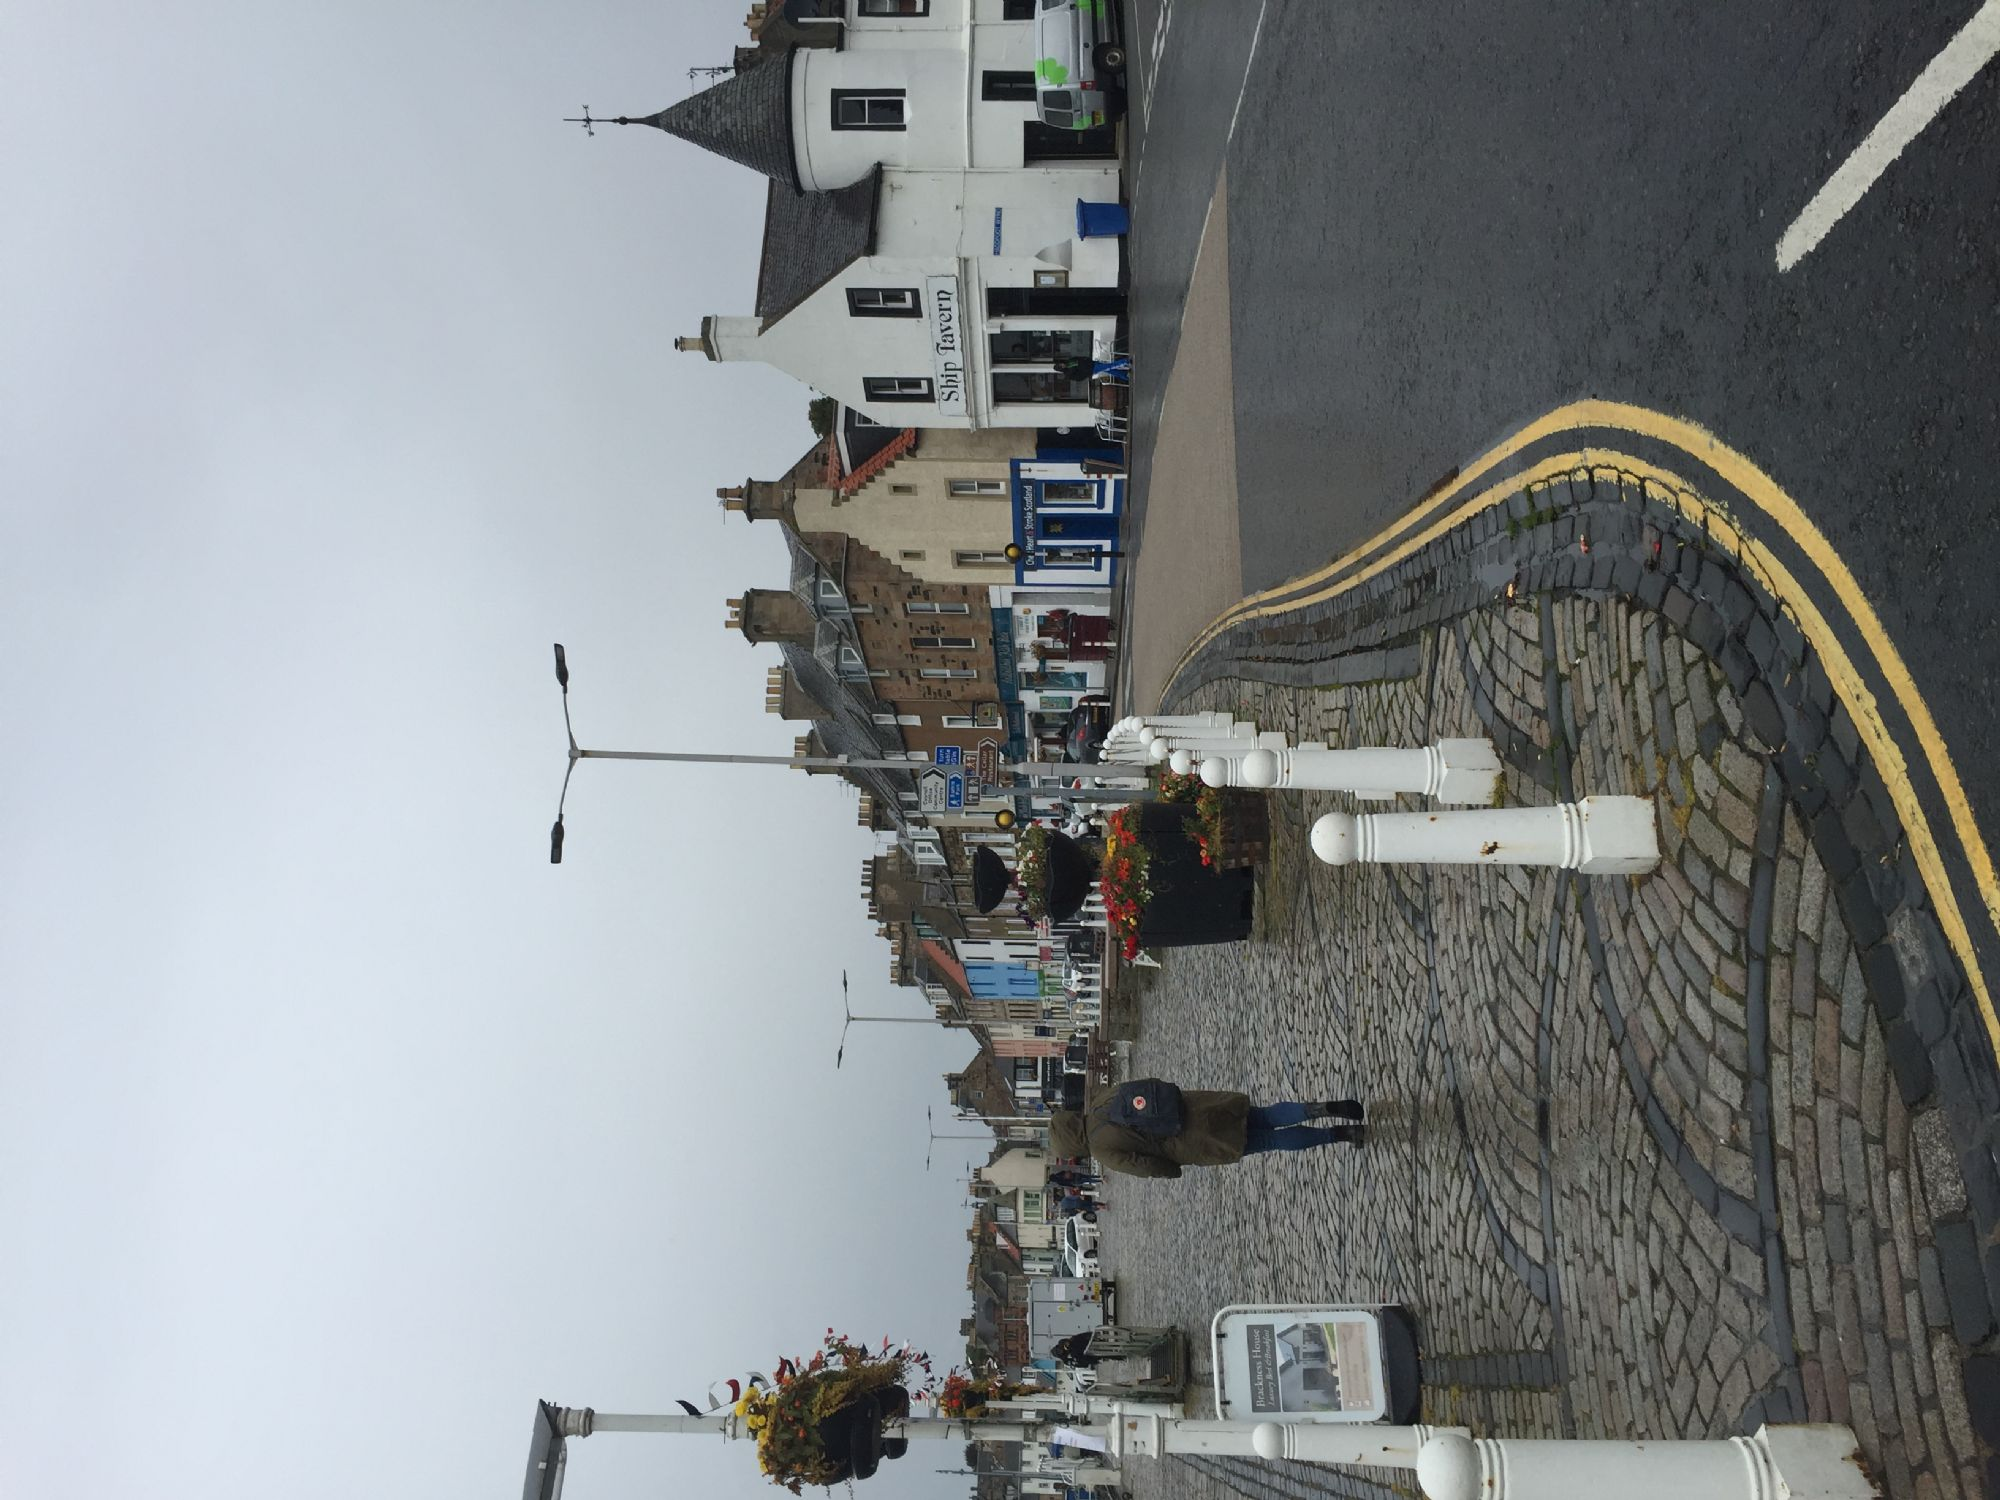 Anstruther 1